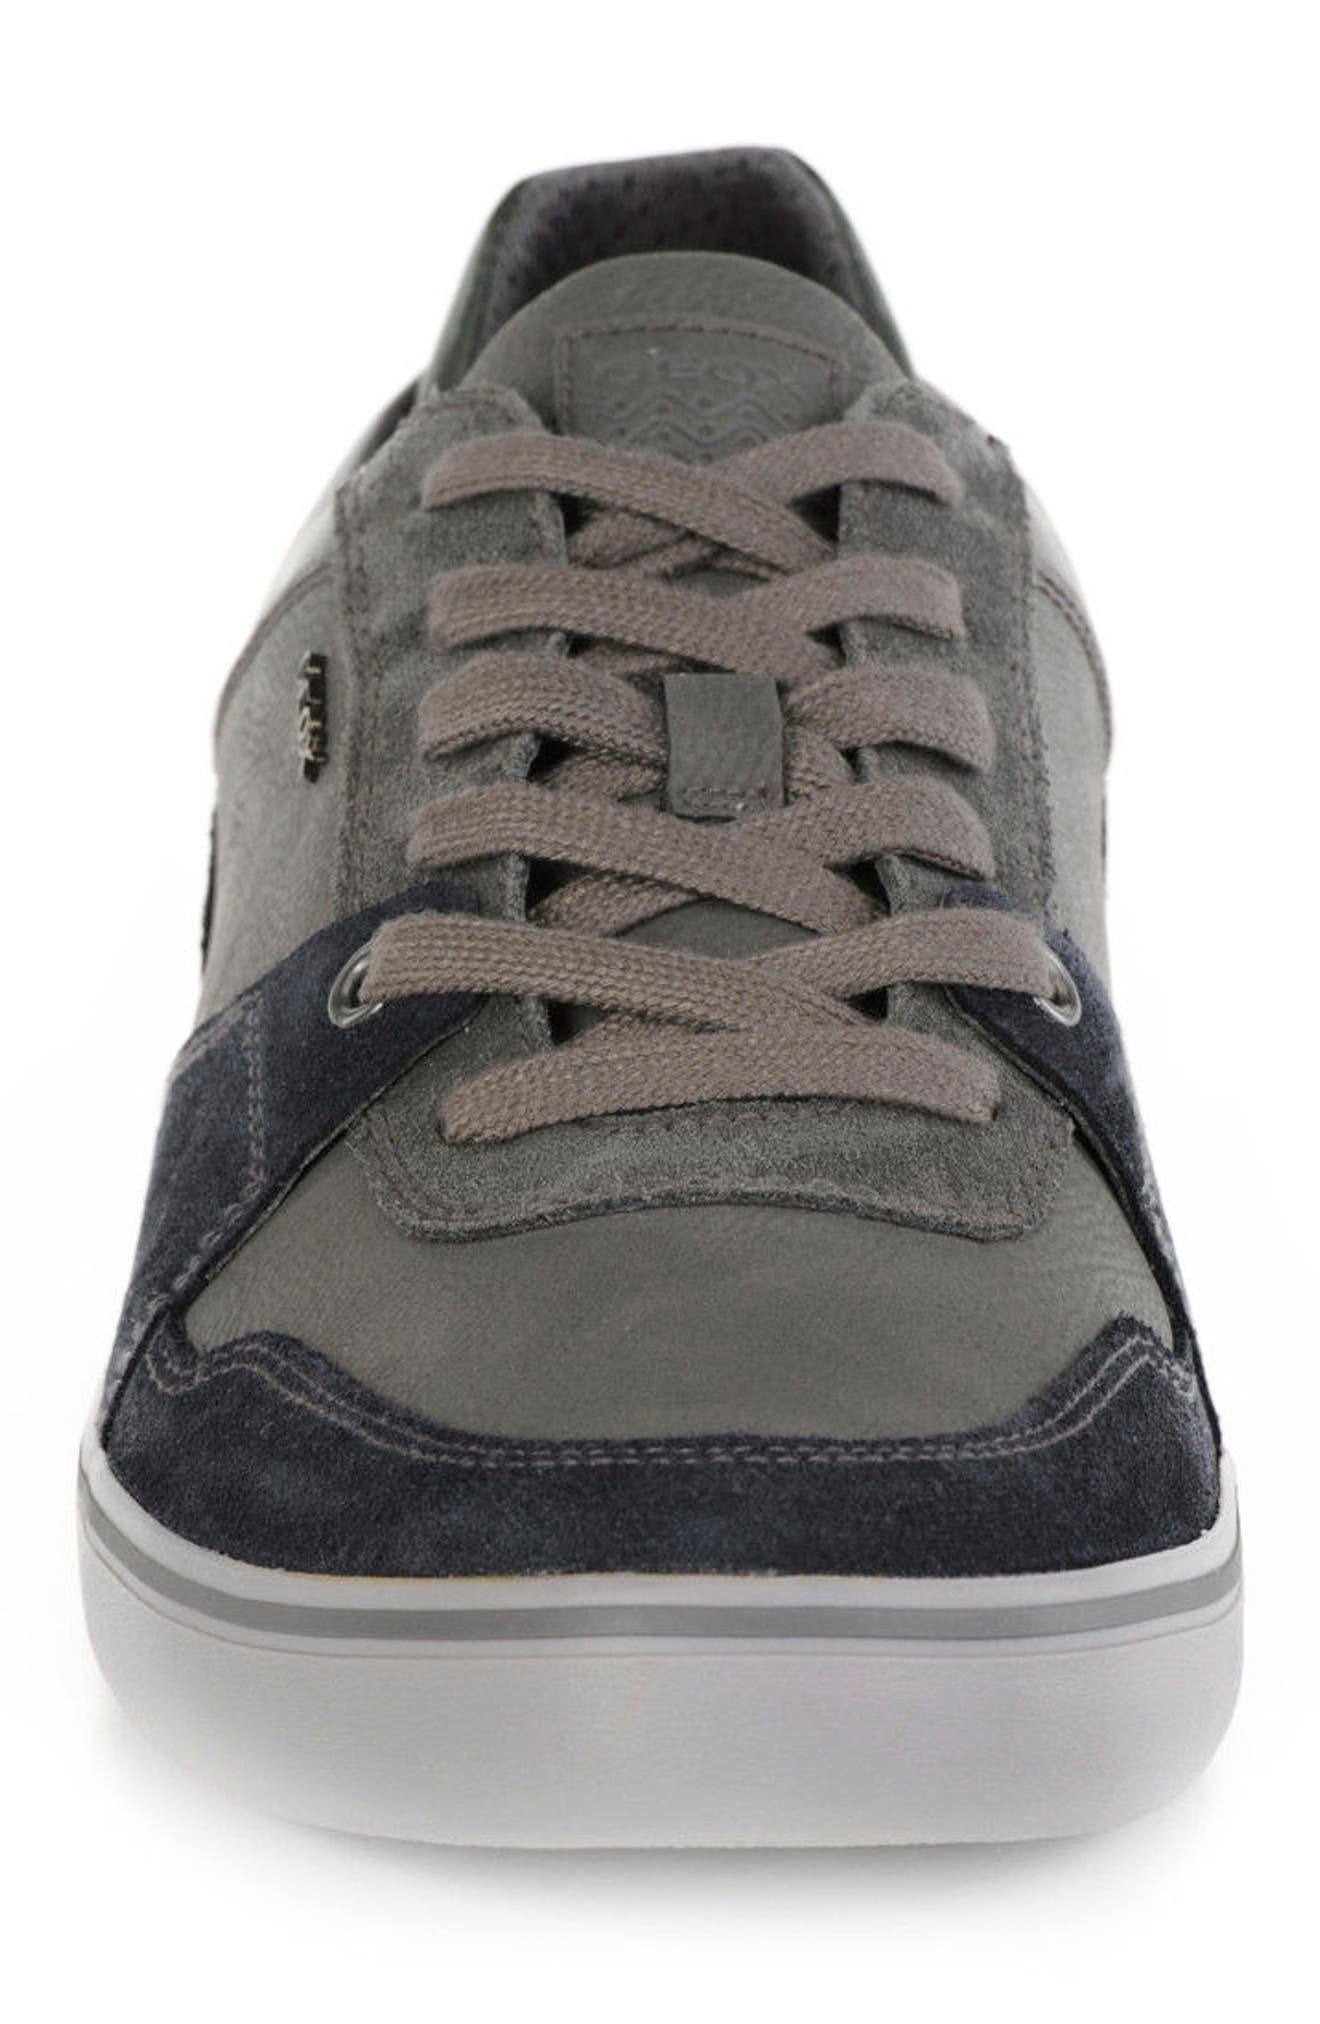 Box 26 Low Top Sneaker,                             Alternate thumbnail 4, color,                             Navy/ Anthracite